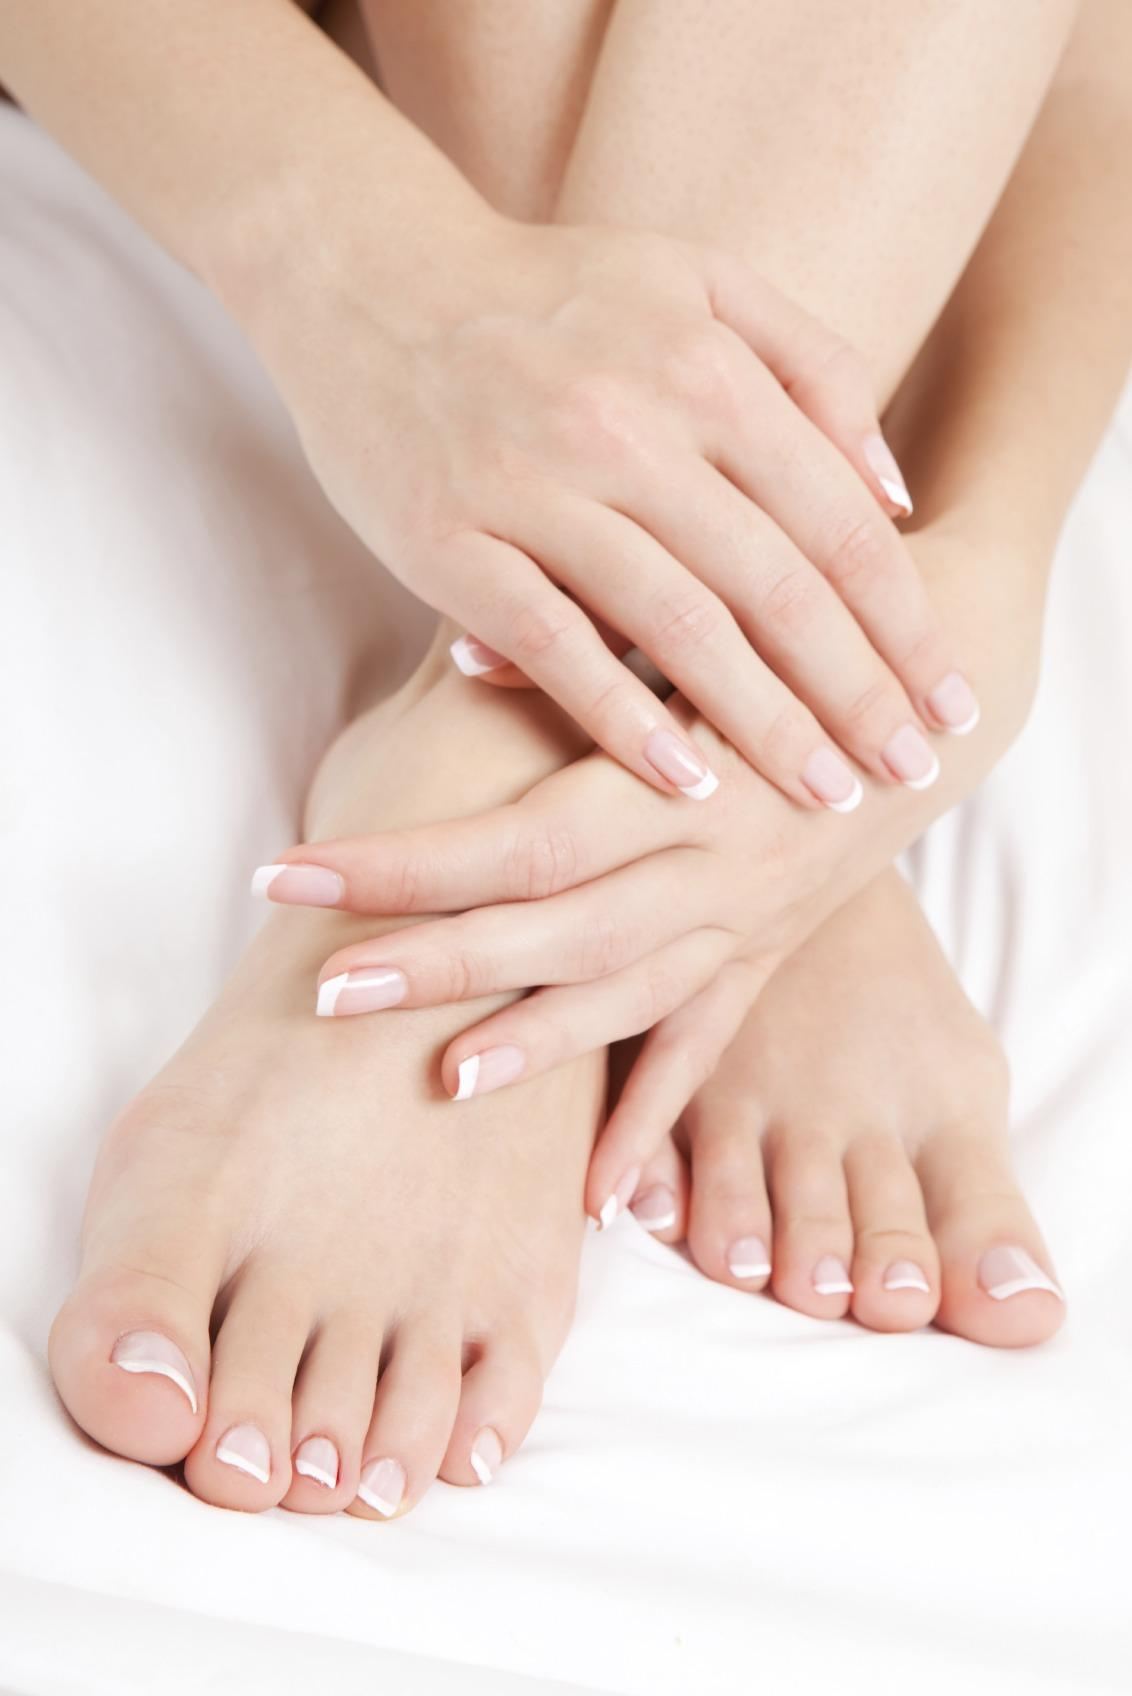 A new way to laser away toenail fungus – for good!